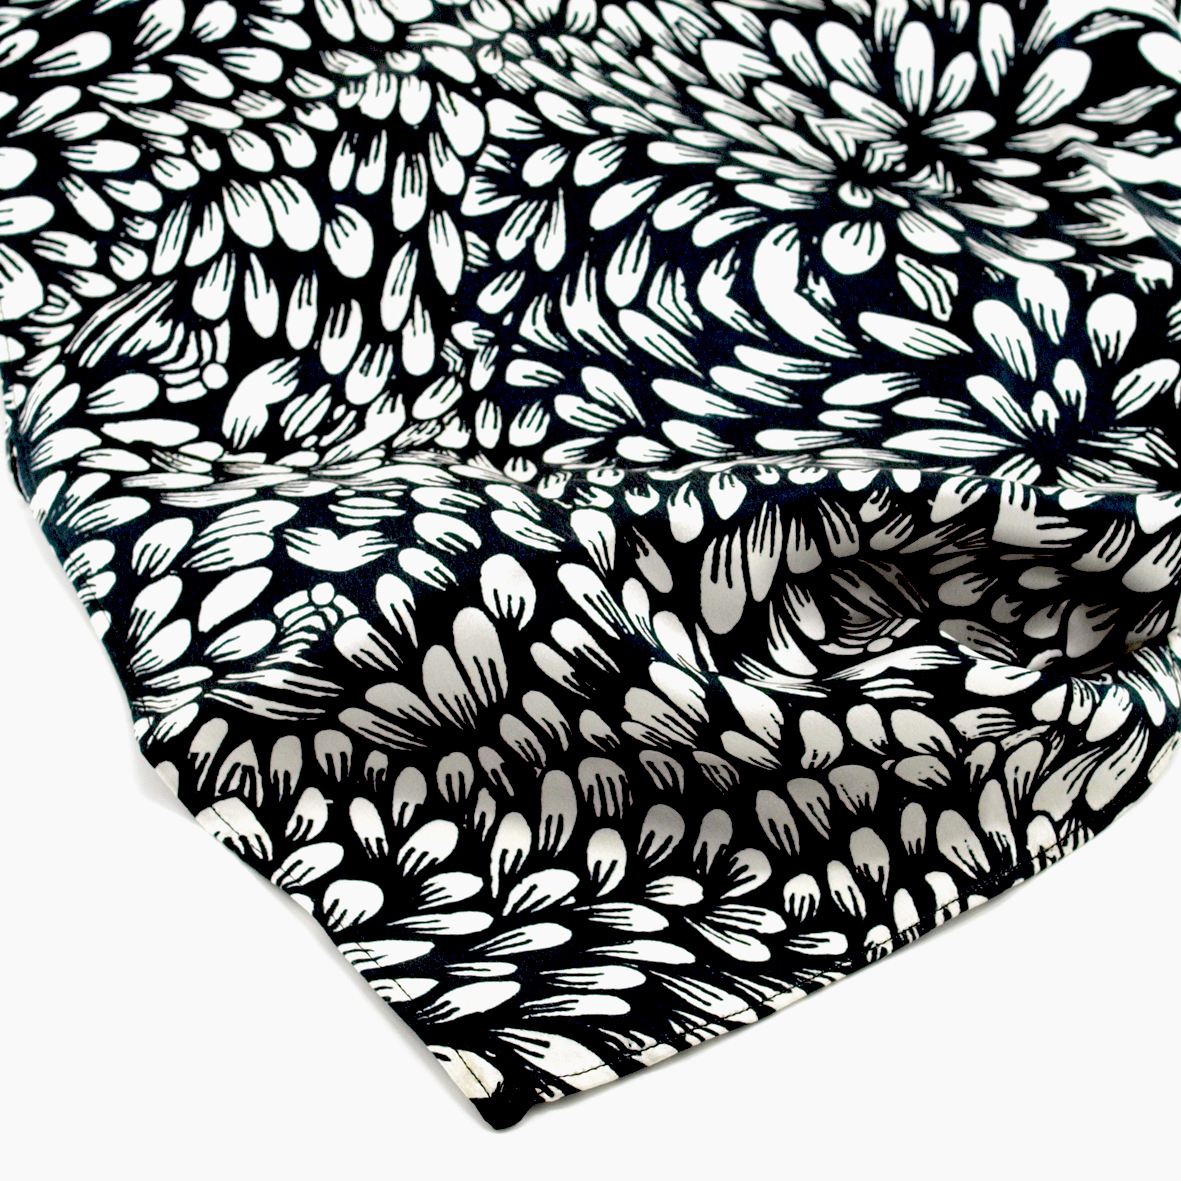 Chrysanth_Shawl_Detail